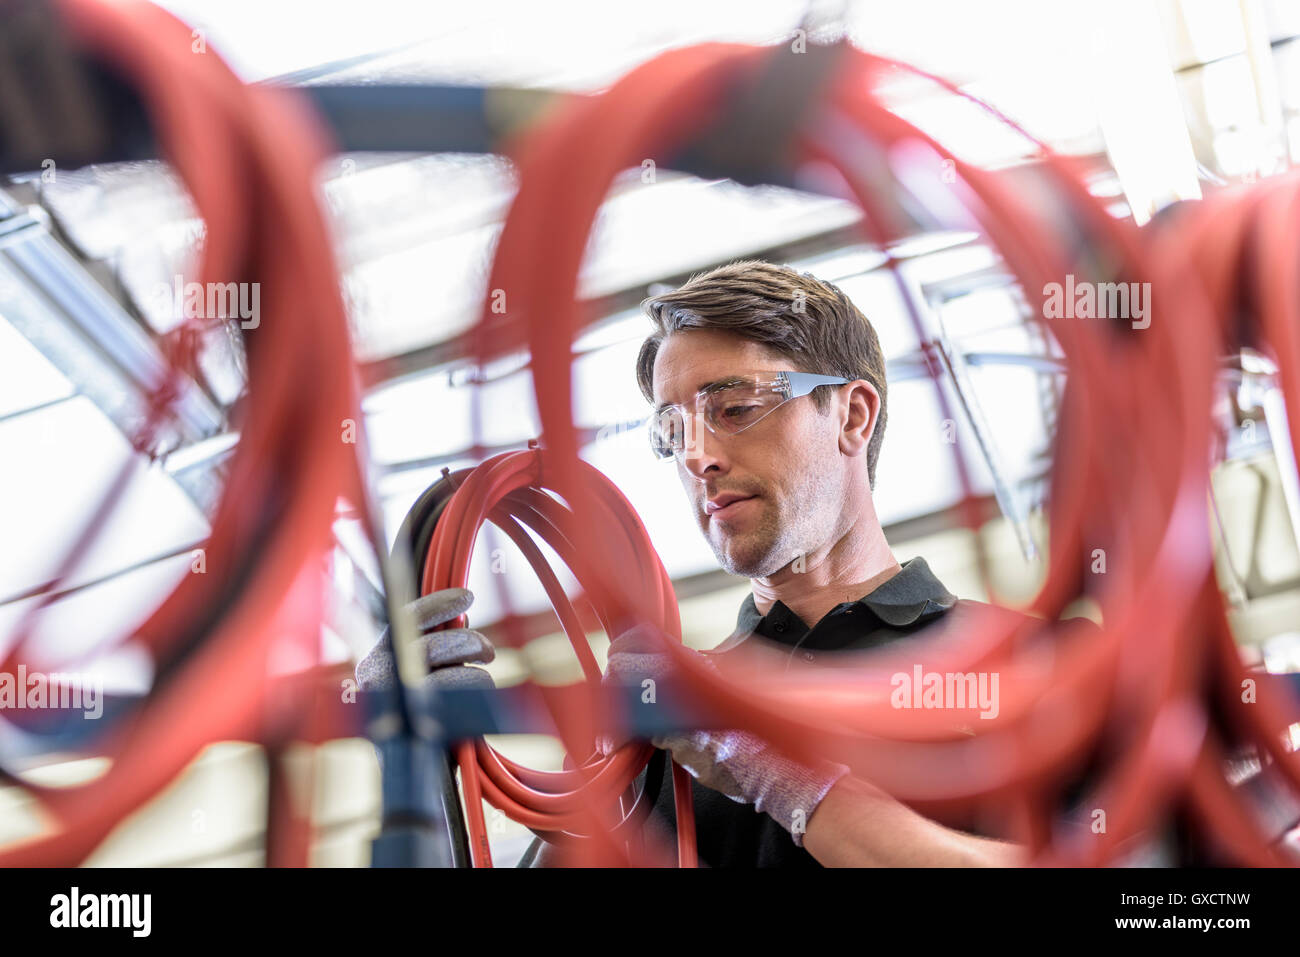 Worker making cable lengths in electrical cable factory - Stock Image